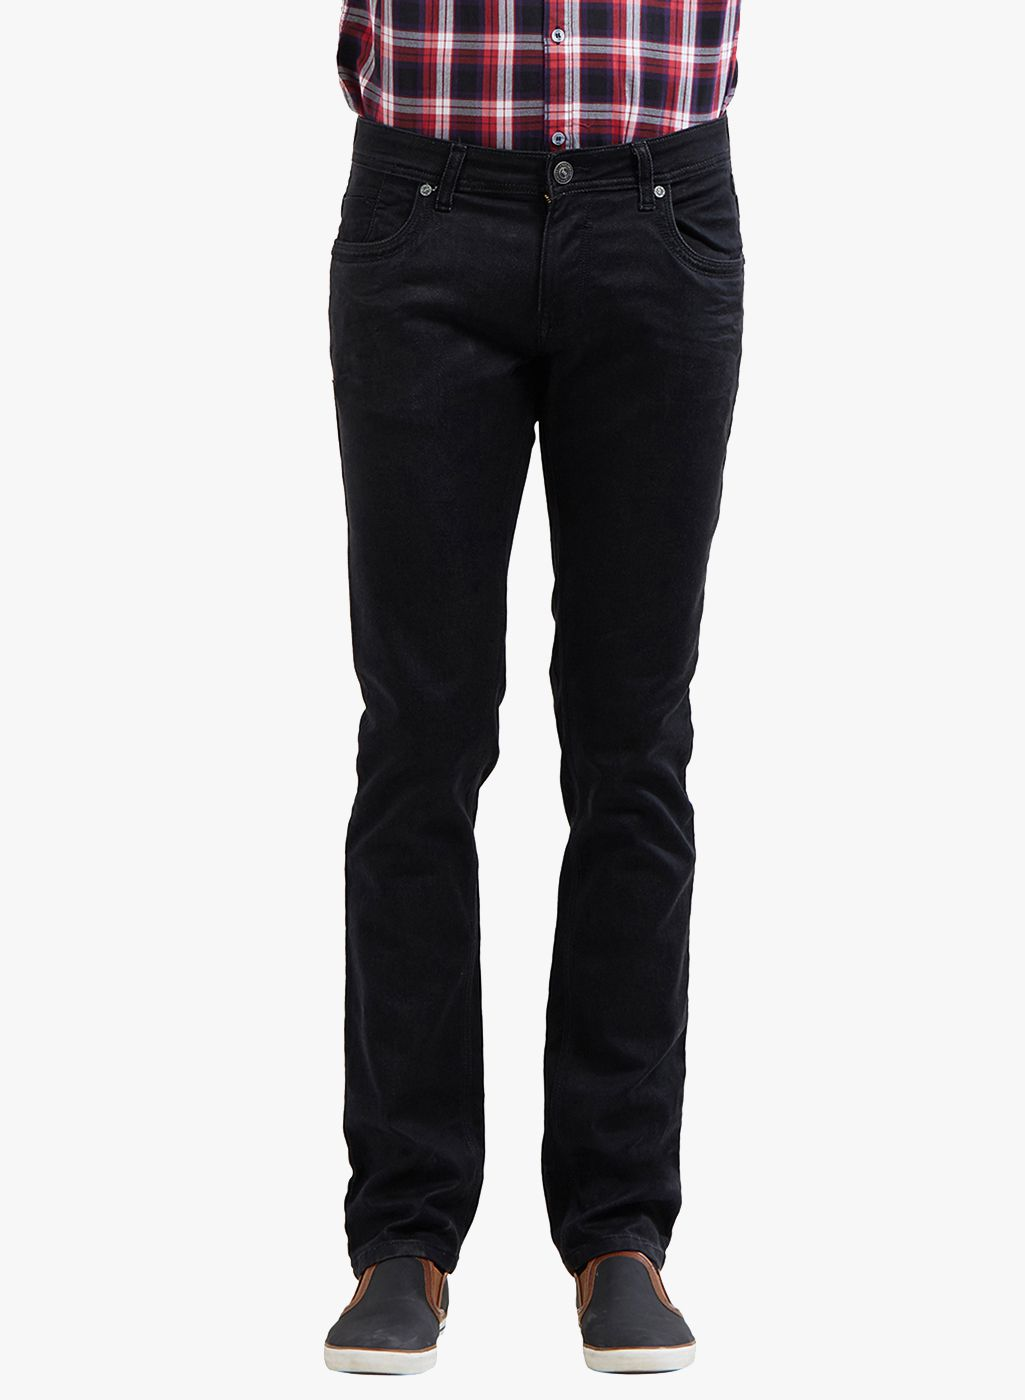 LAWMAN PG3 Black Slim Jeans